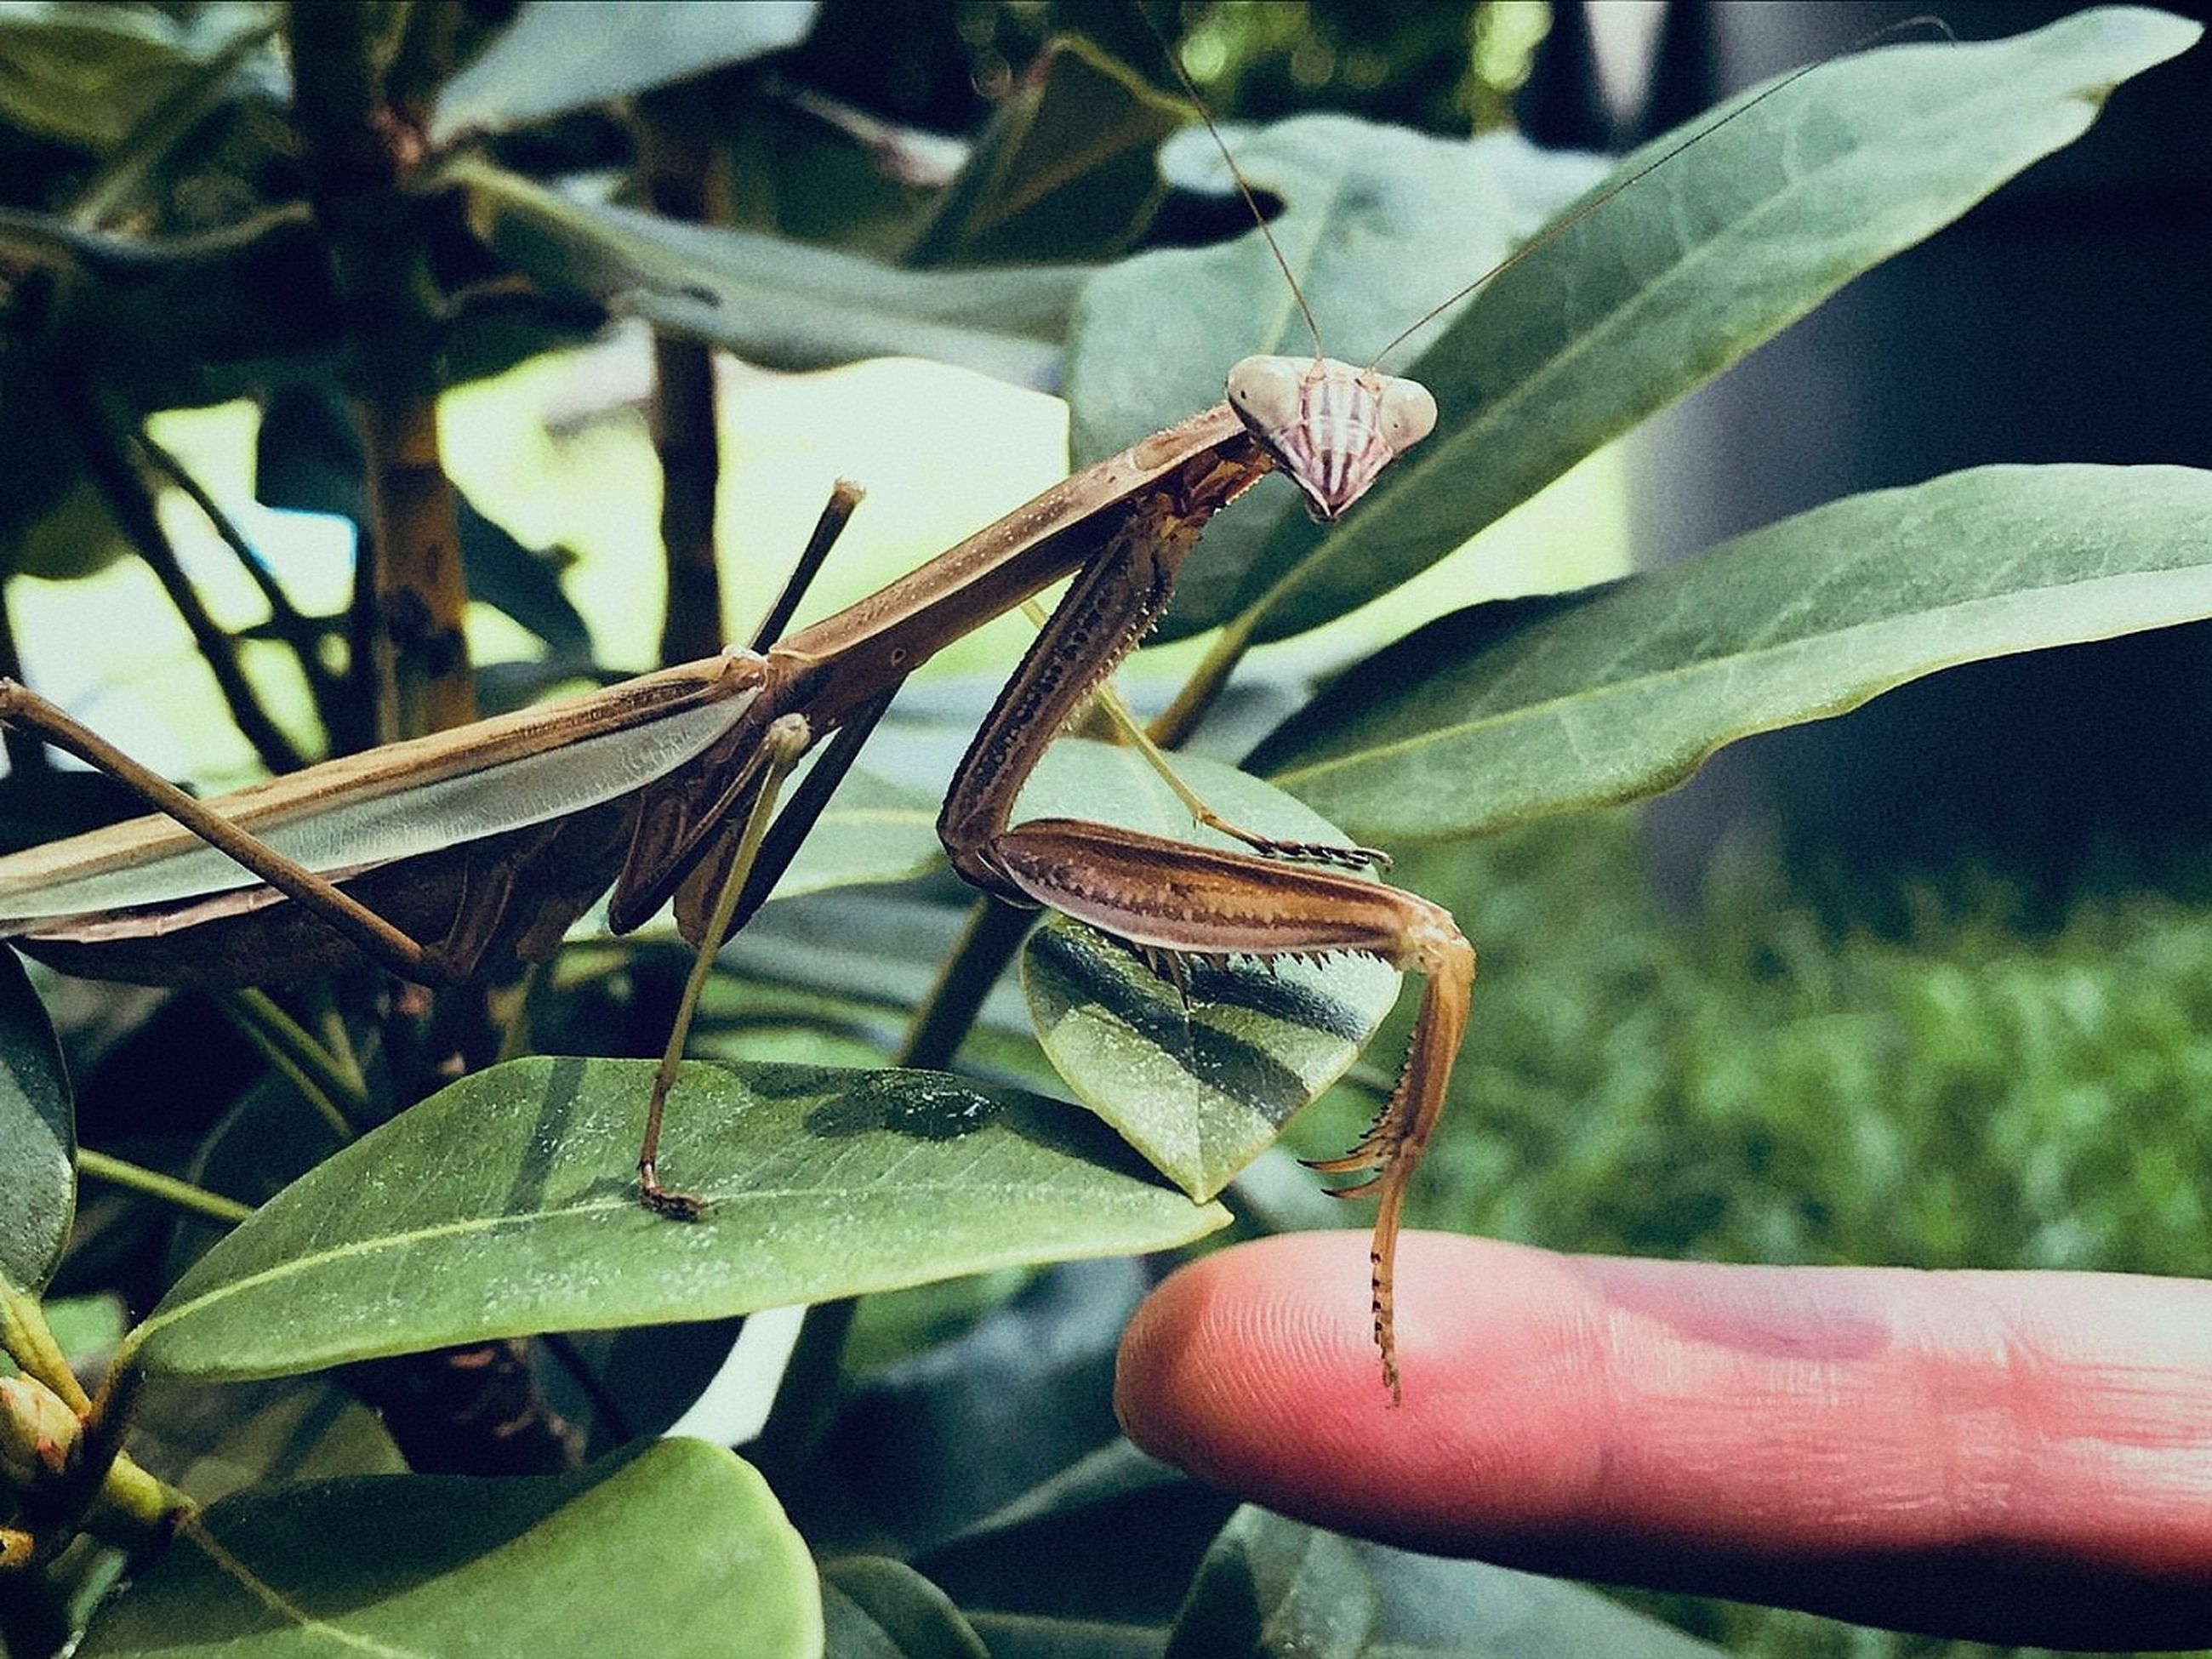 invertebrate, insect, animal, one animal, animals in the wild, animal themes, animal wildlife, hand, human hand, plant part, close-up, leaf, human body part, focus on foreground, green color, plant, day, nature, real people, finger, body part, outdoors